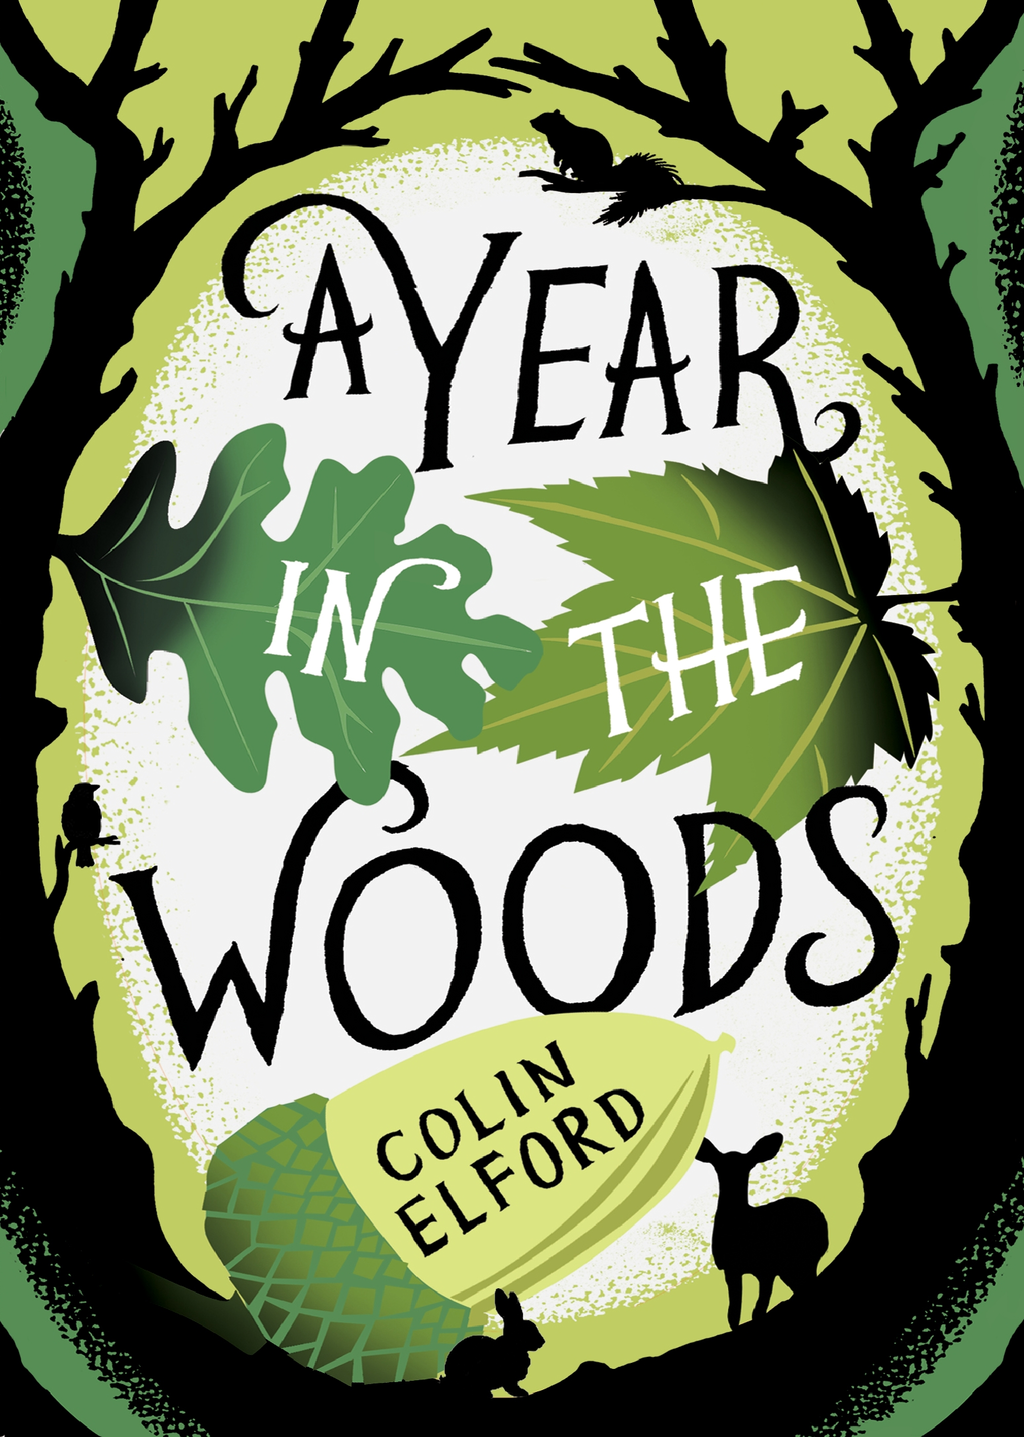 A Year in the Woods By: Colin Elford